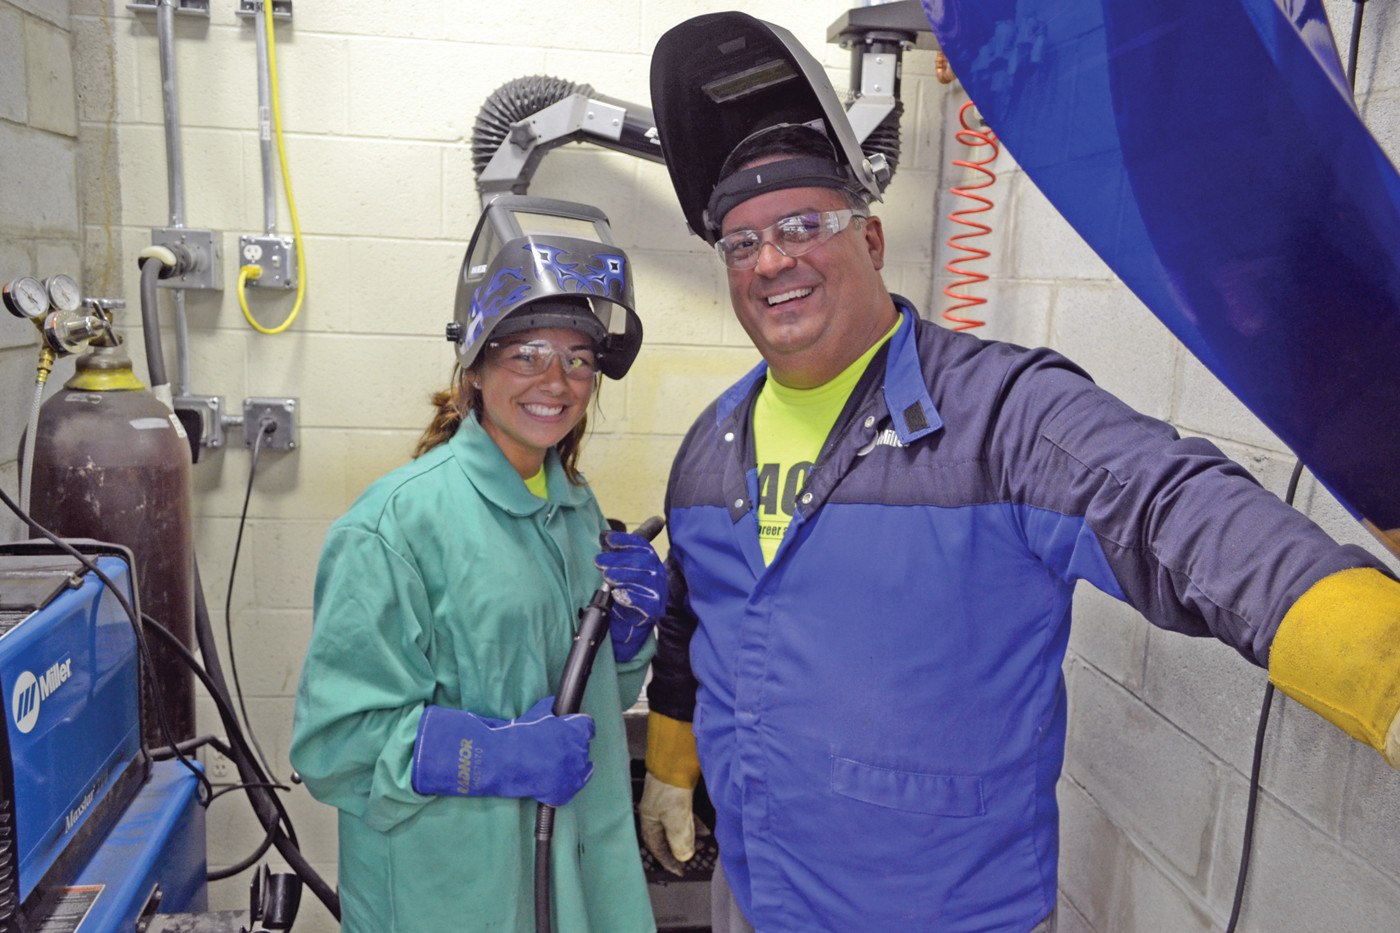 SOMETHING DIFFERENT: Mae D'Ambra smiles in her welding gear prior to welding her name into a piece of metal she cut out and de-burred to smooth its edges. She said she never expected to be doing such an activity. Also pictured is instructor Chris Bianco.